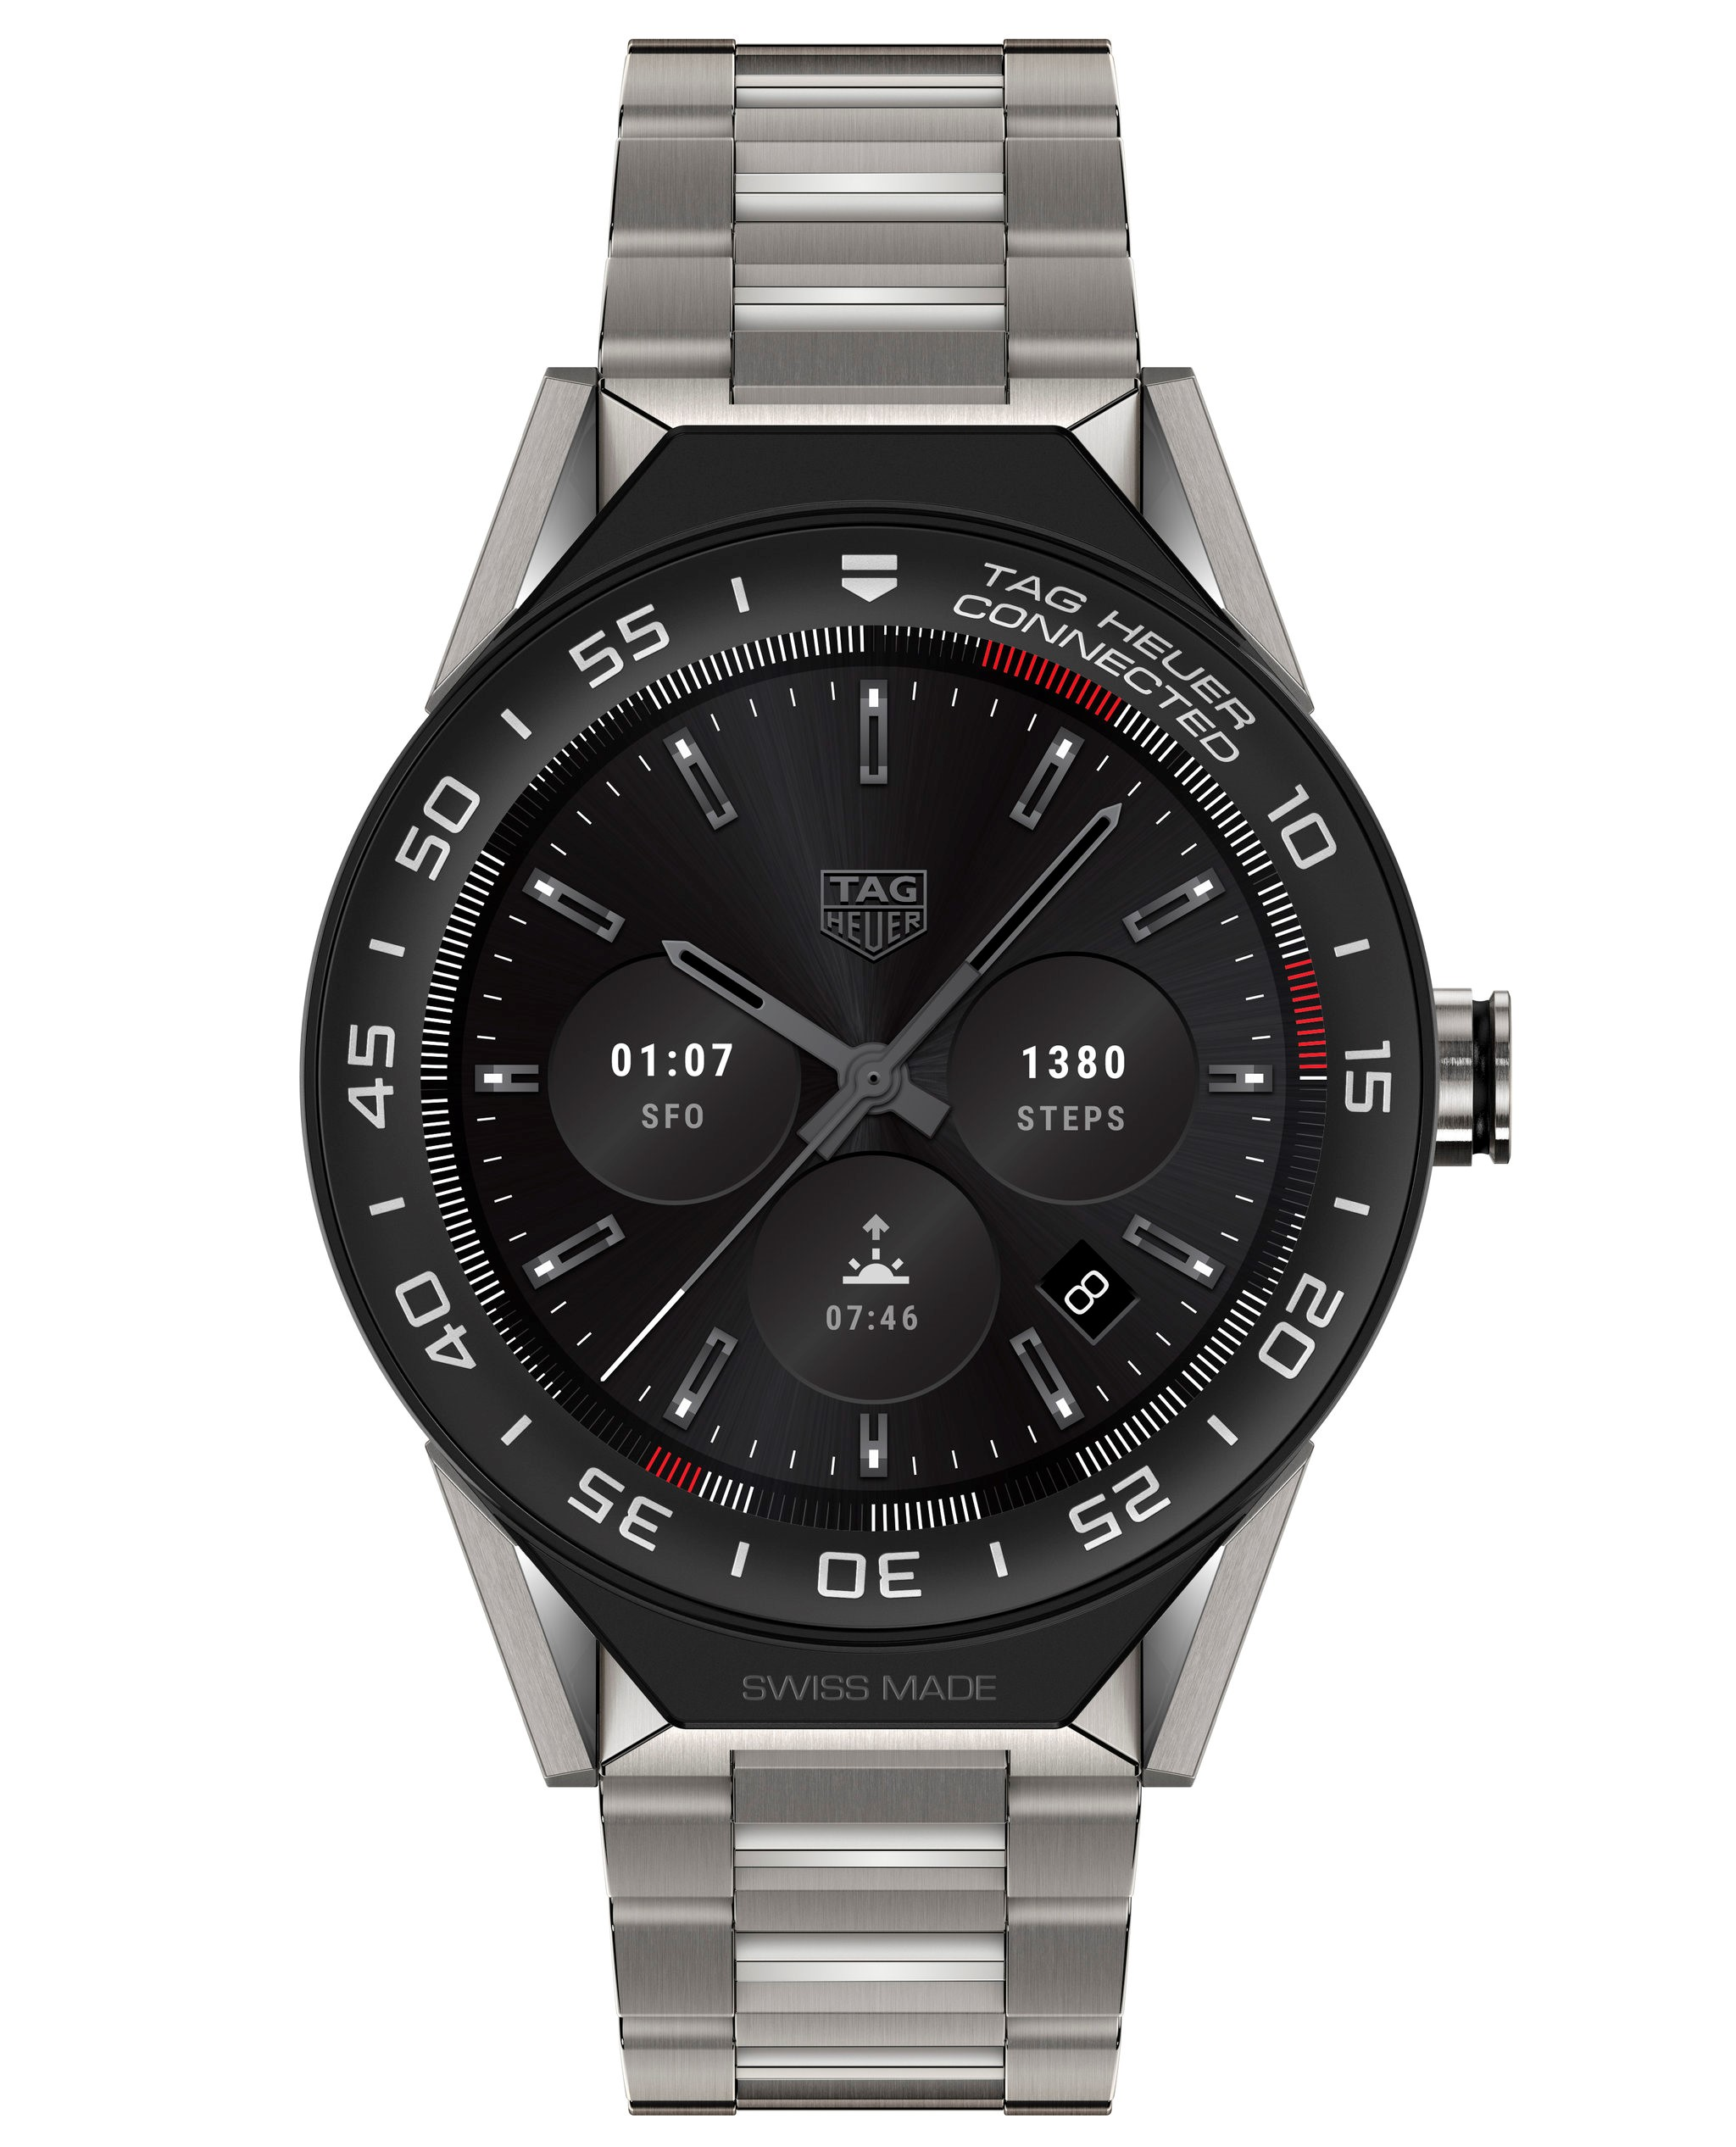 Tag heuer connected modular 45 the luxury smartwatch for guys pinoy guy guide for The tag heuer connected modular